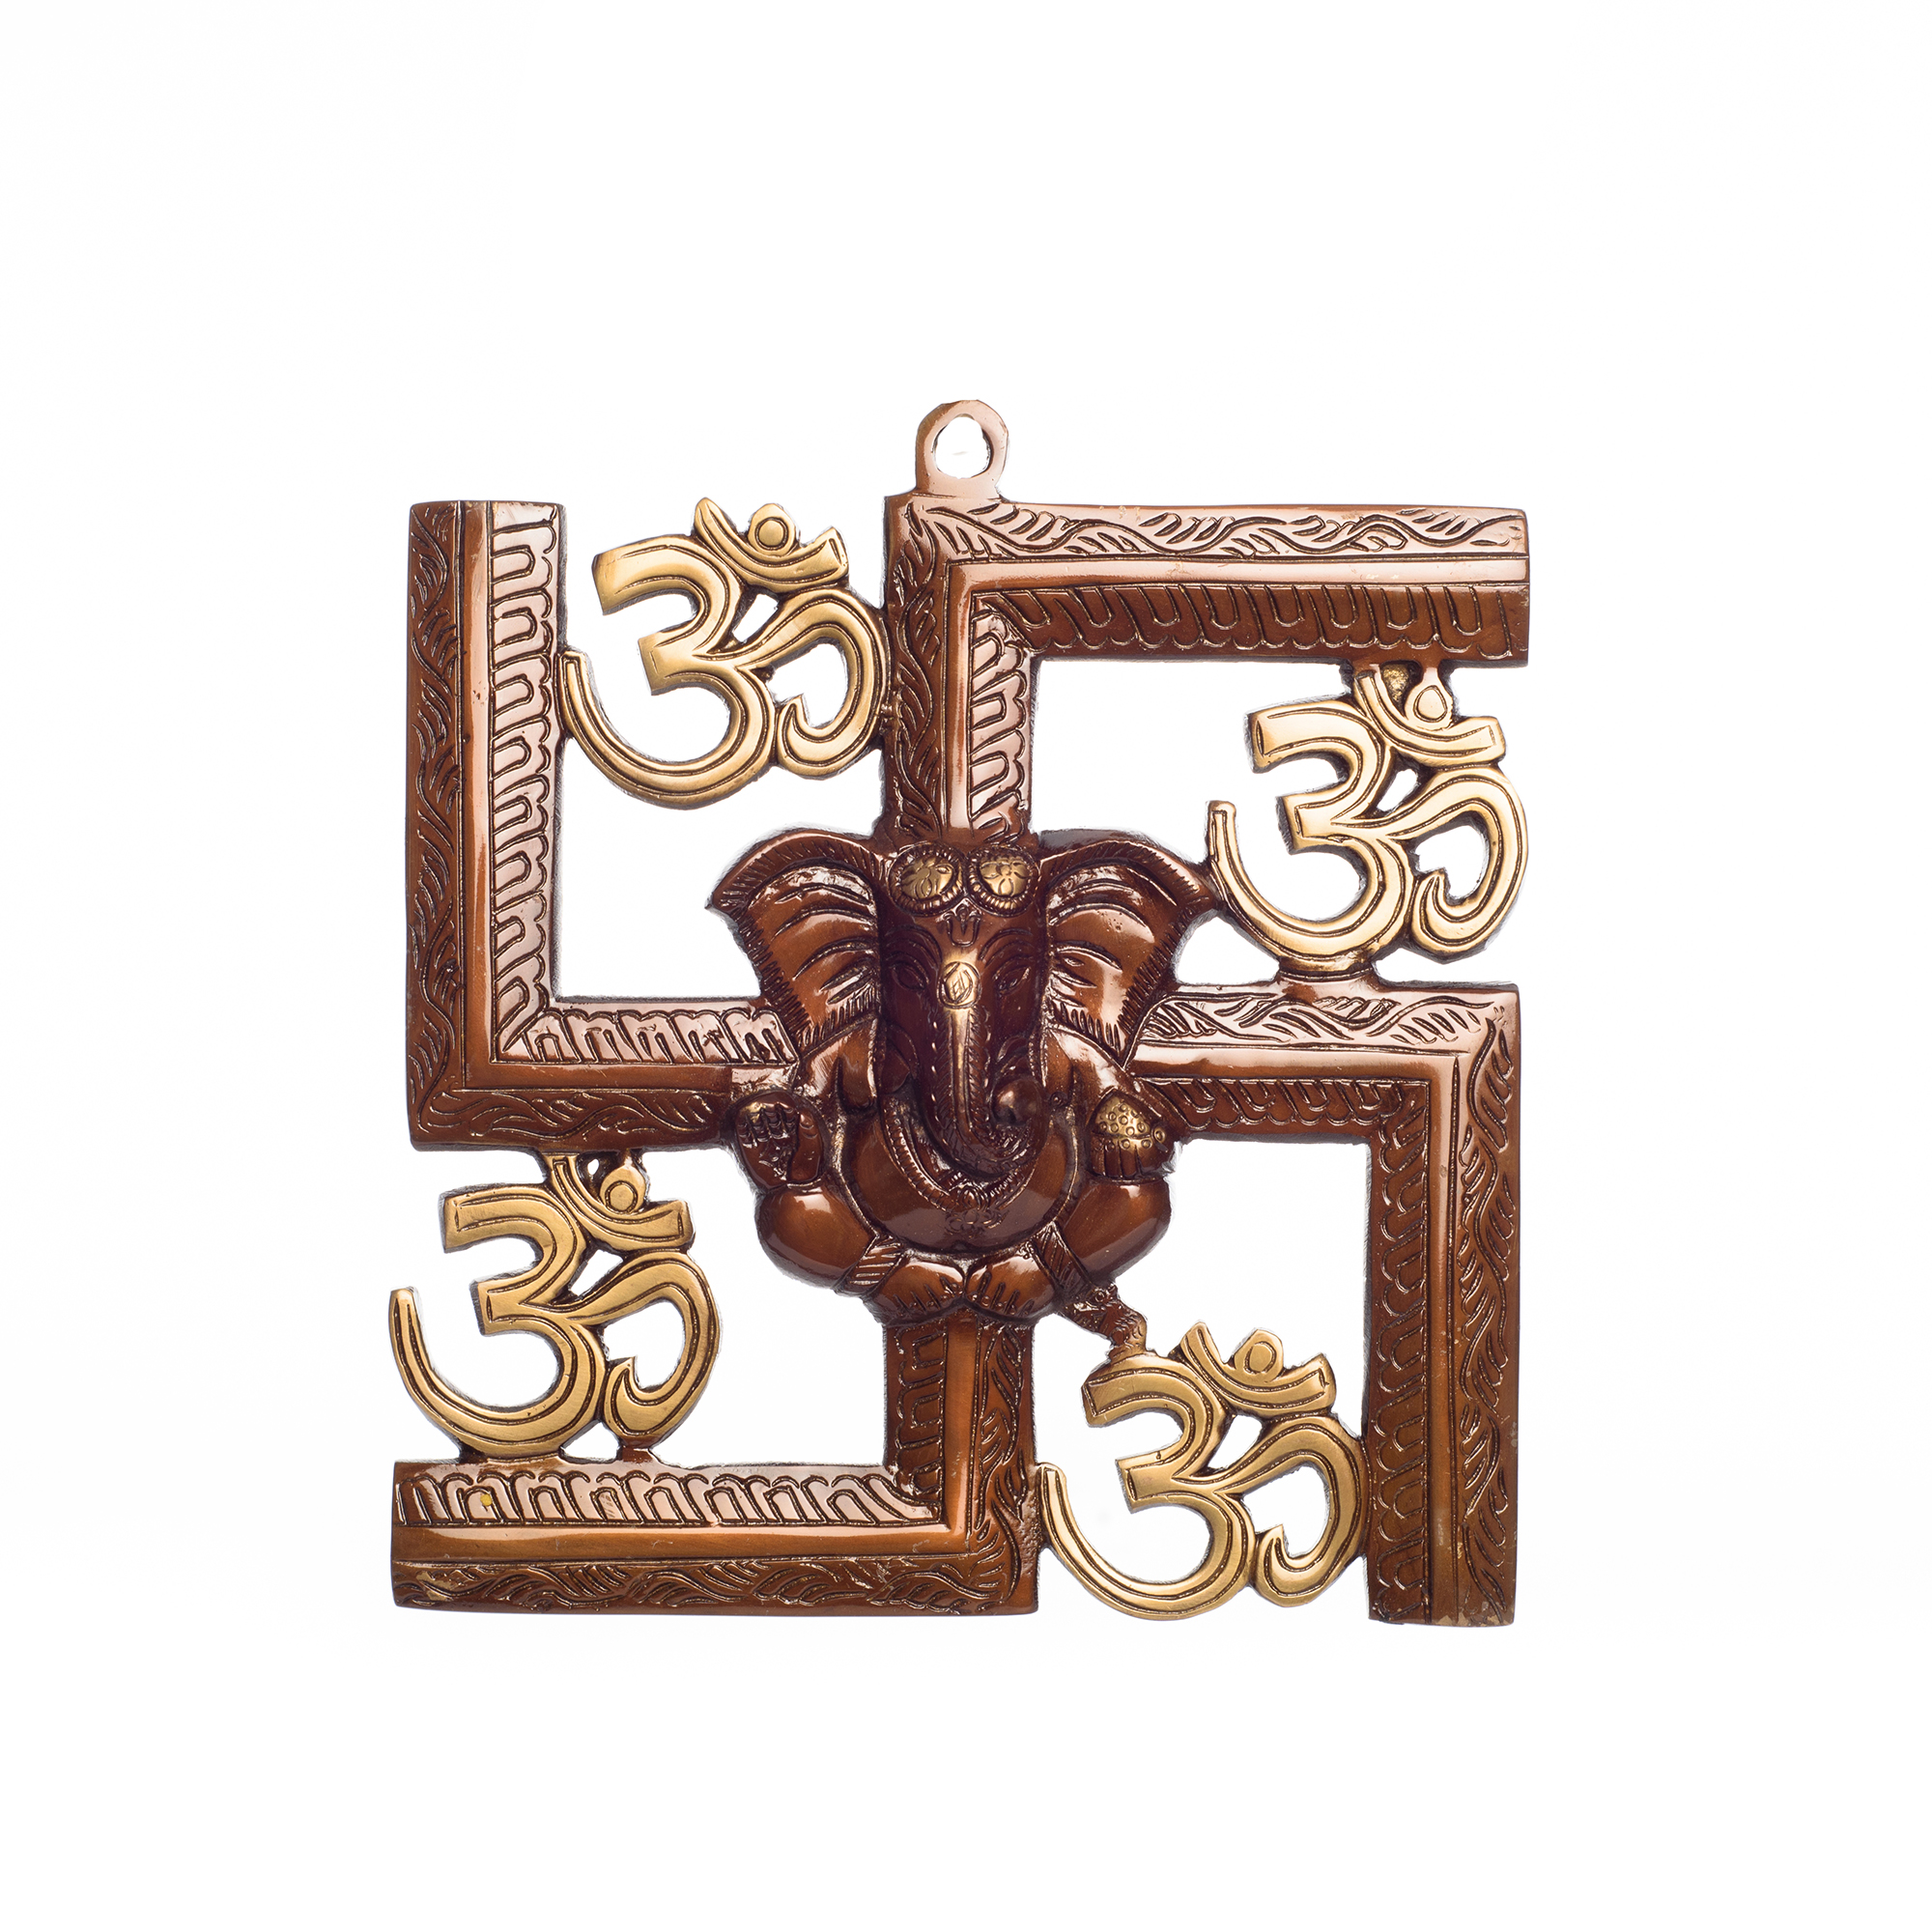 Swastika Om Ganesha Brass Wall Hanging Indian Home Decor